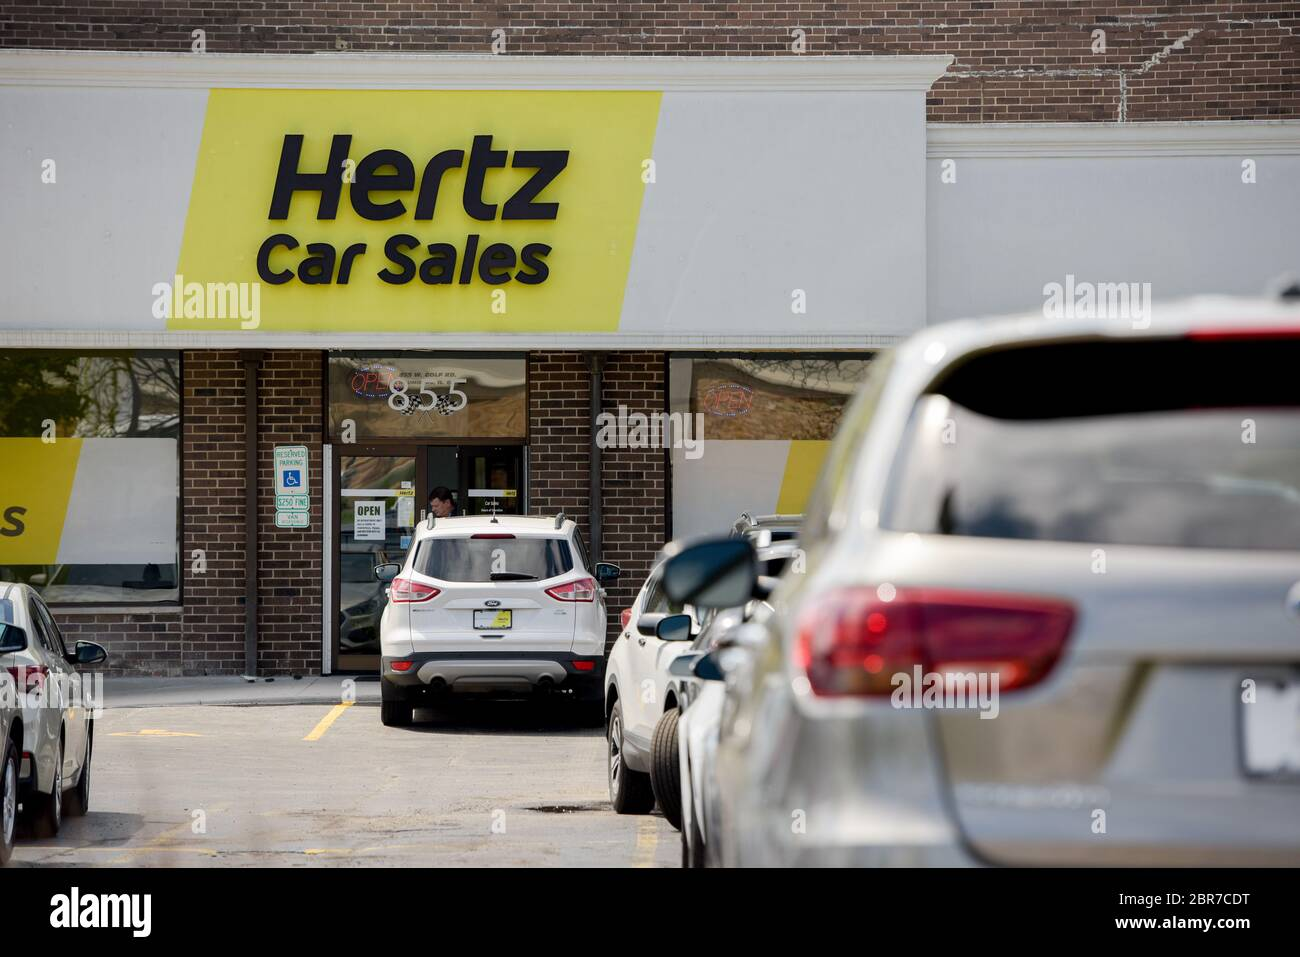 Page 3 Hertz Car Rental High Resolution Stock Photography And Images Alamy